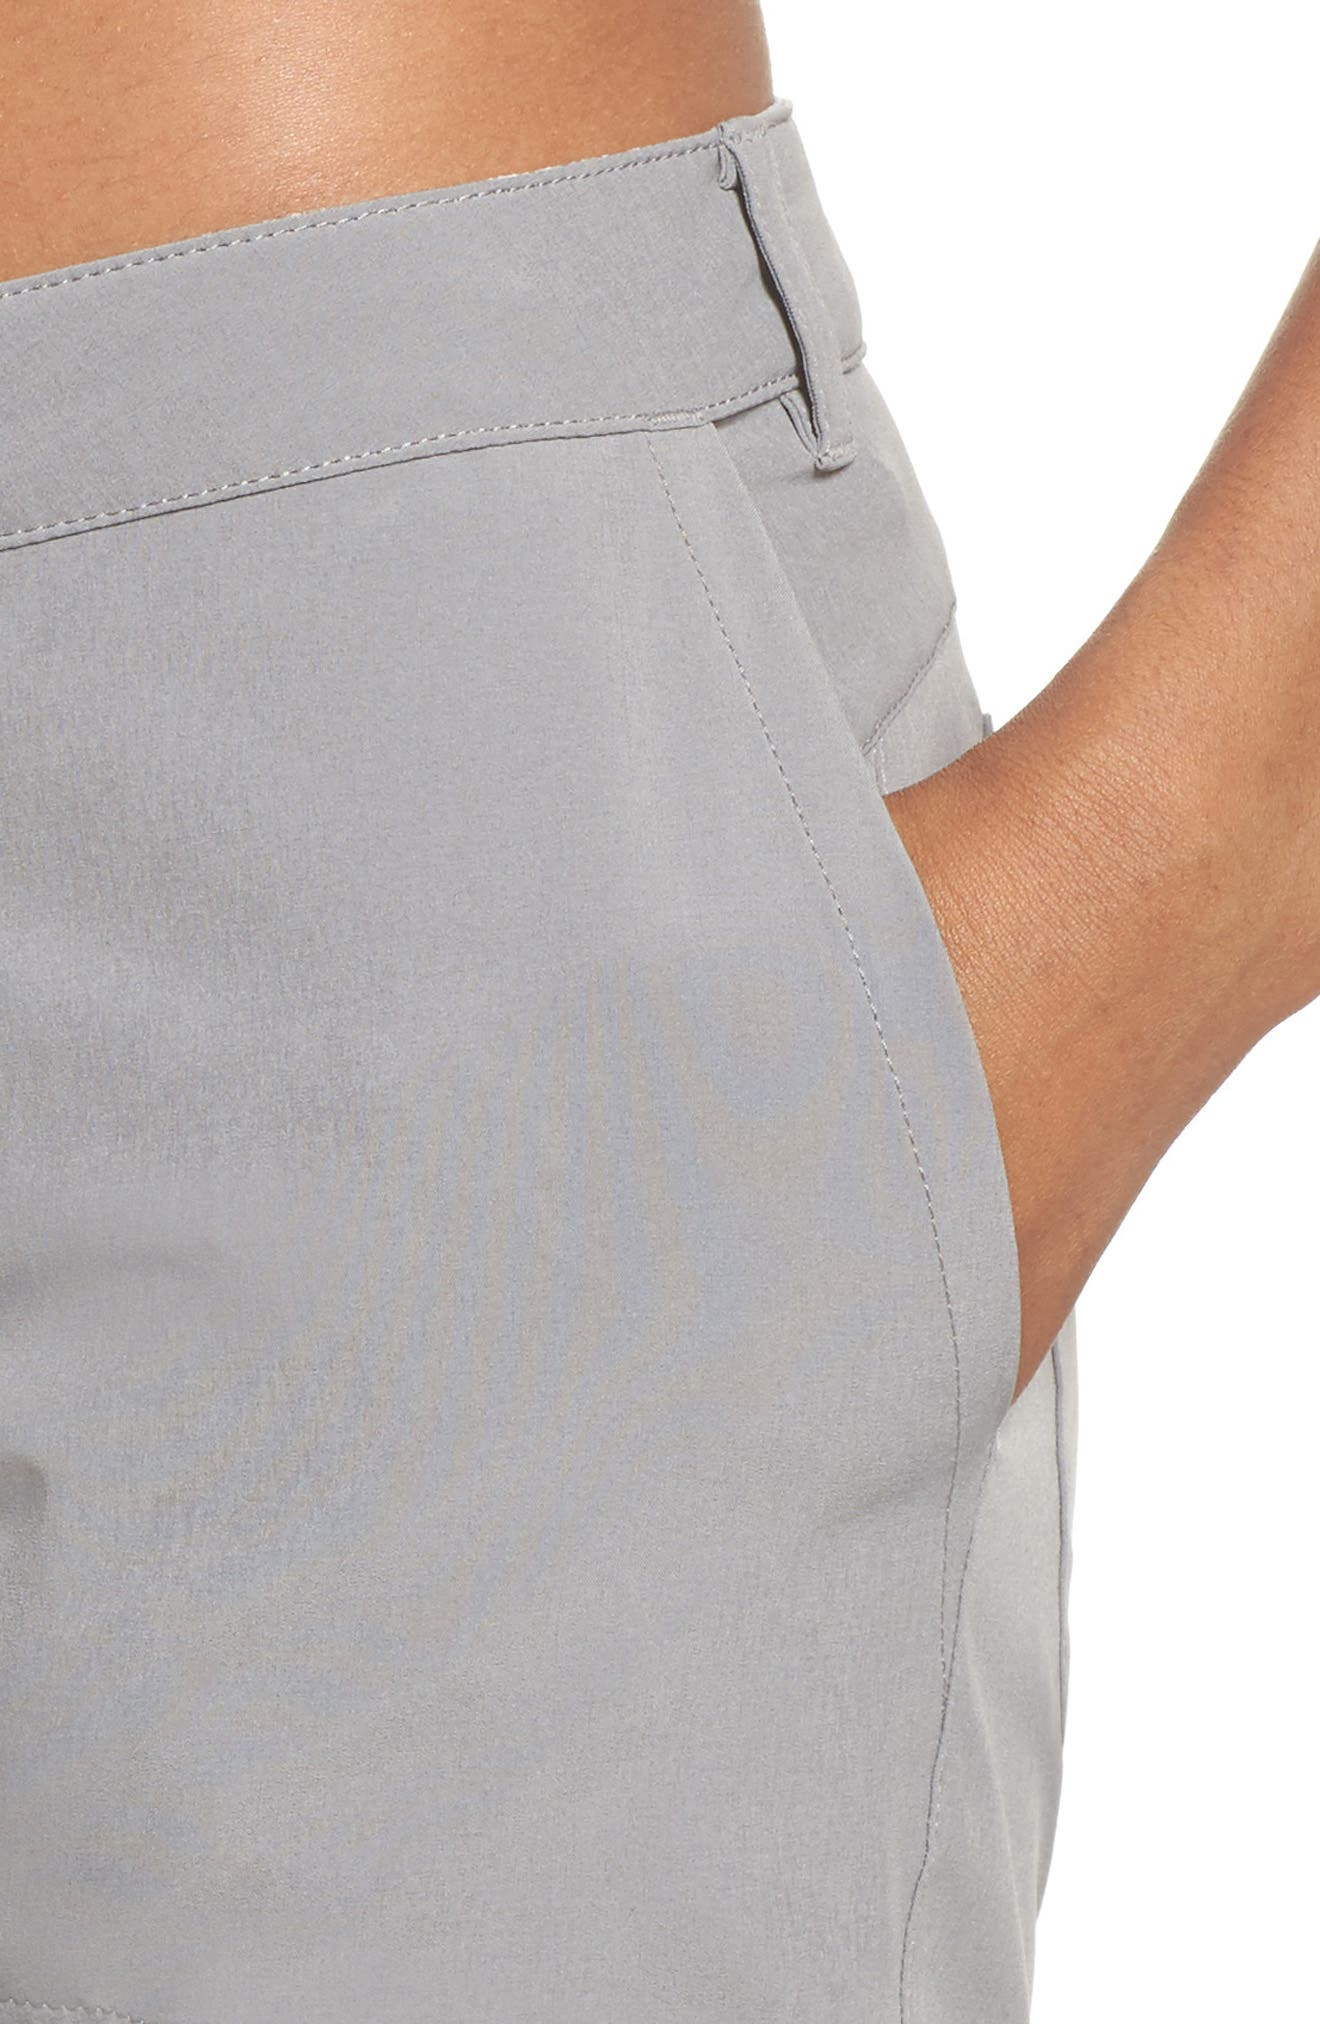 Happy Hike Shorts,                             Alternate thumbnail 4, color,                             Feather Grey